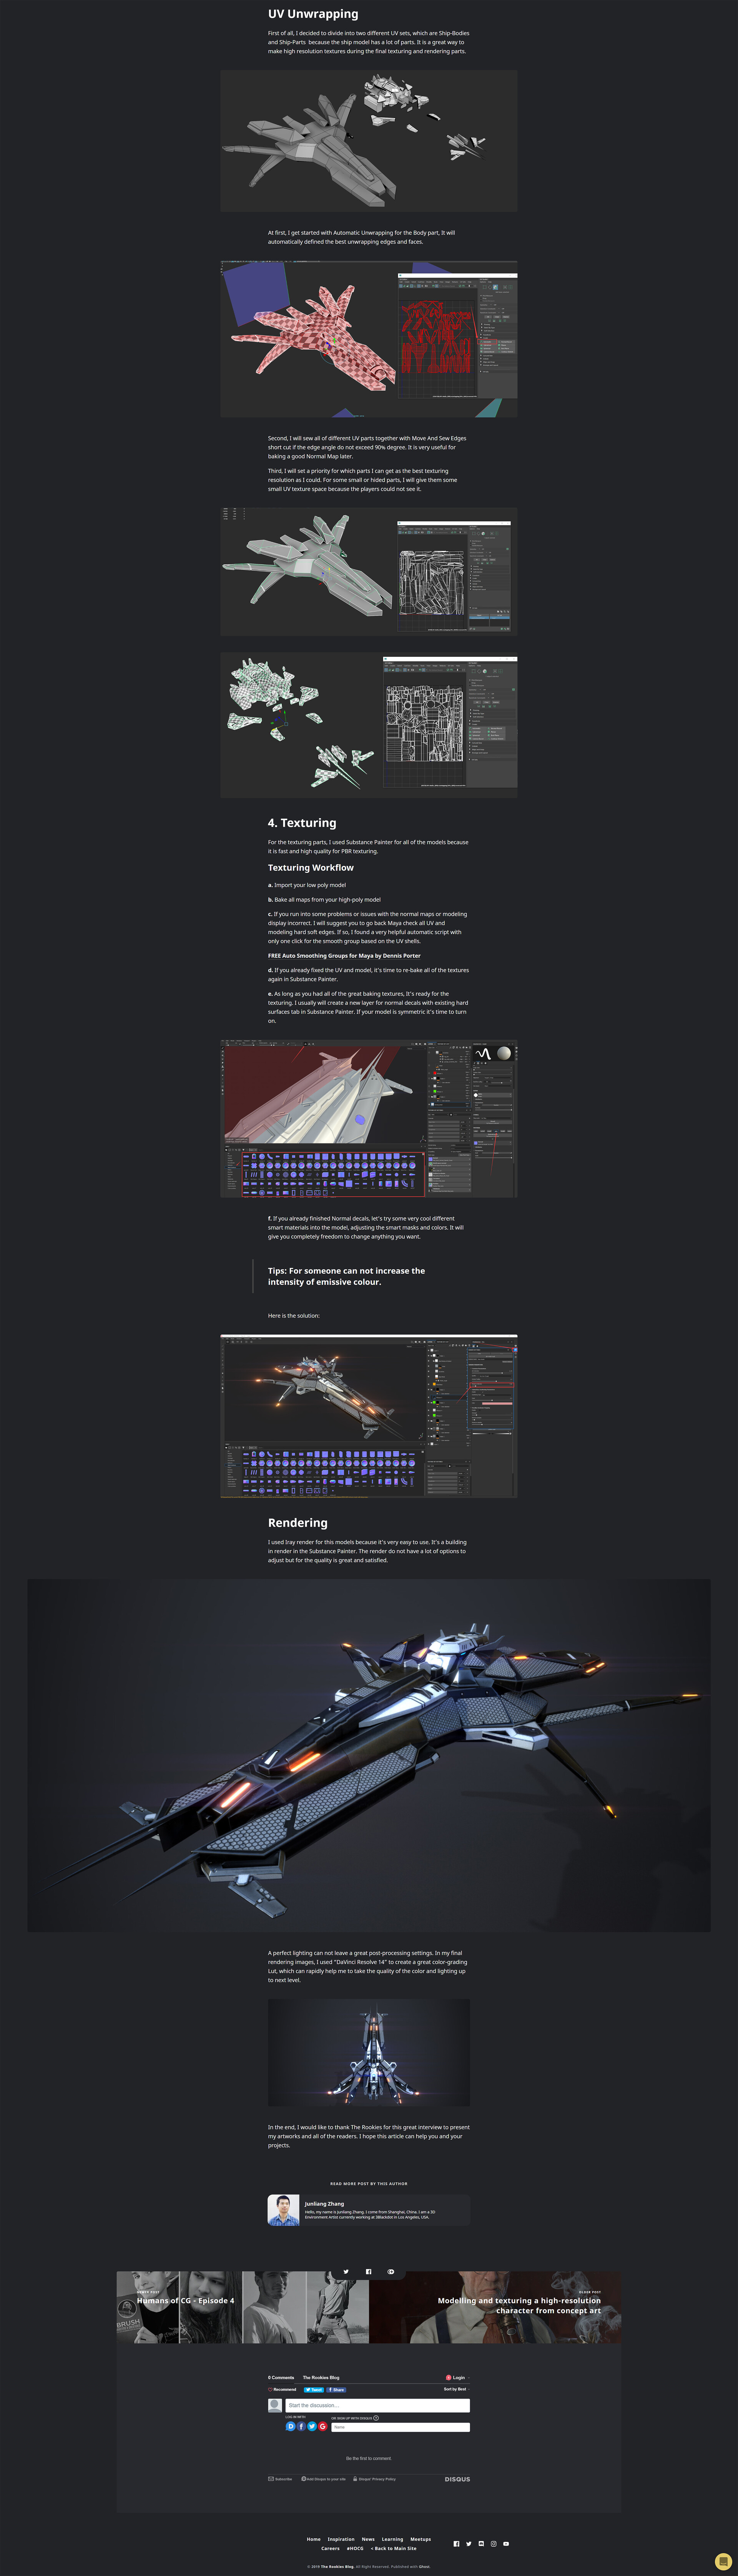 Junliang zhang creating a space fighter with substance painter for games 02